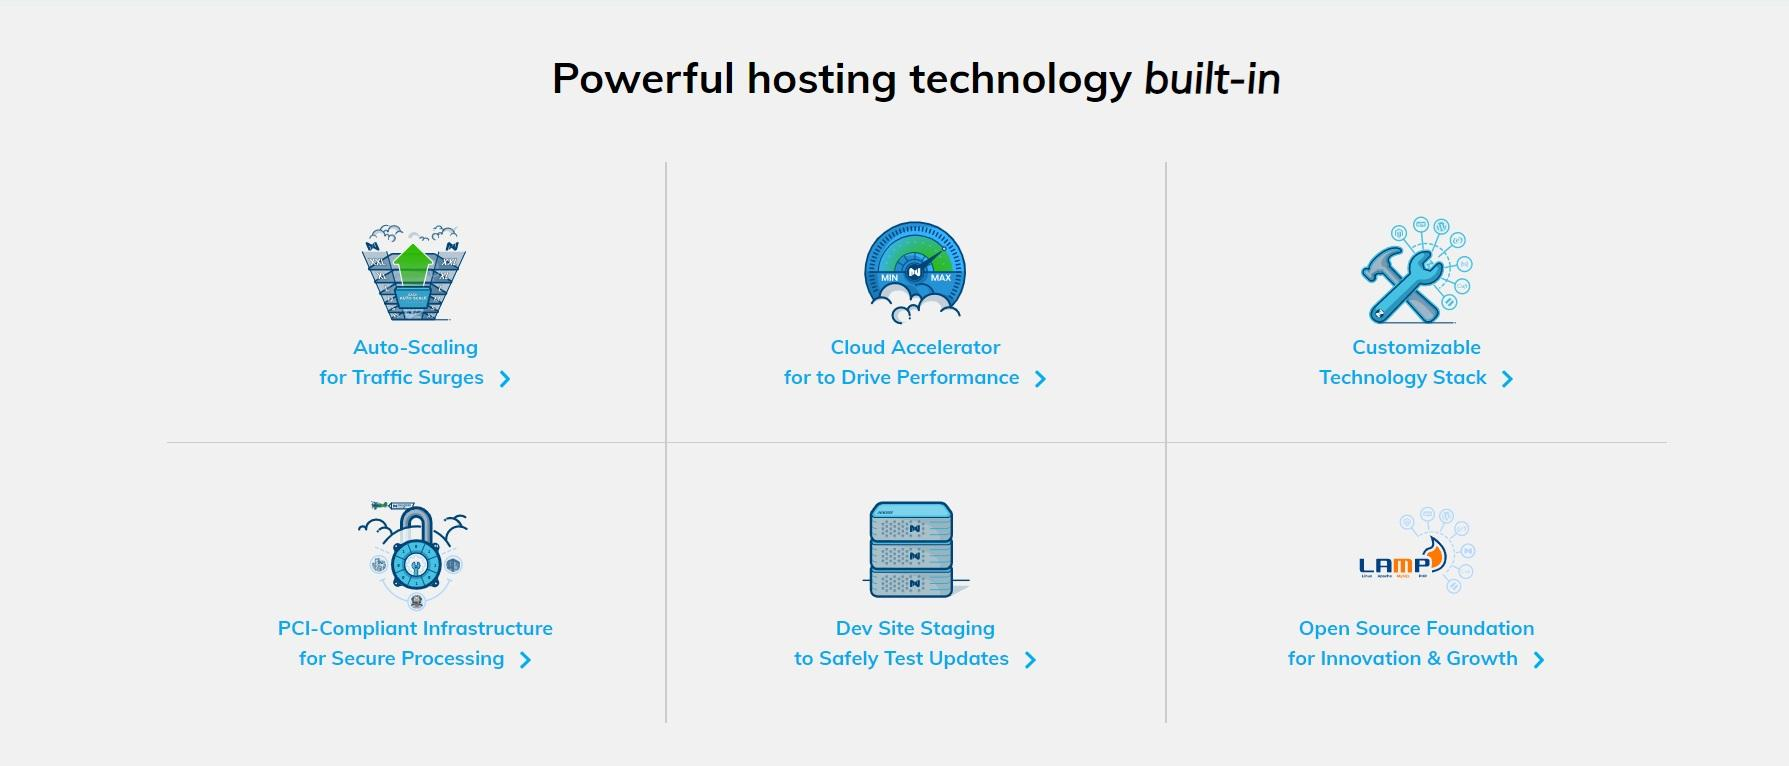 Nexcess provides built-in hosting technology